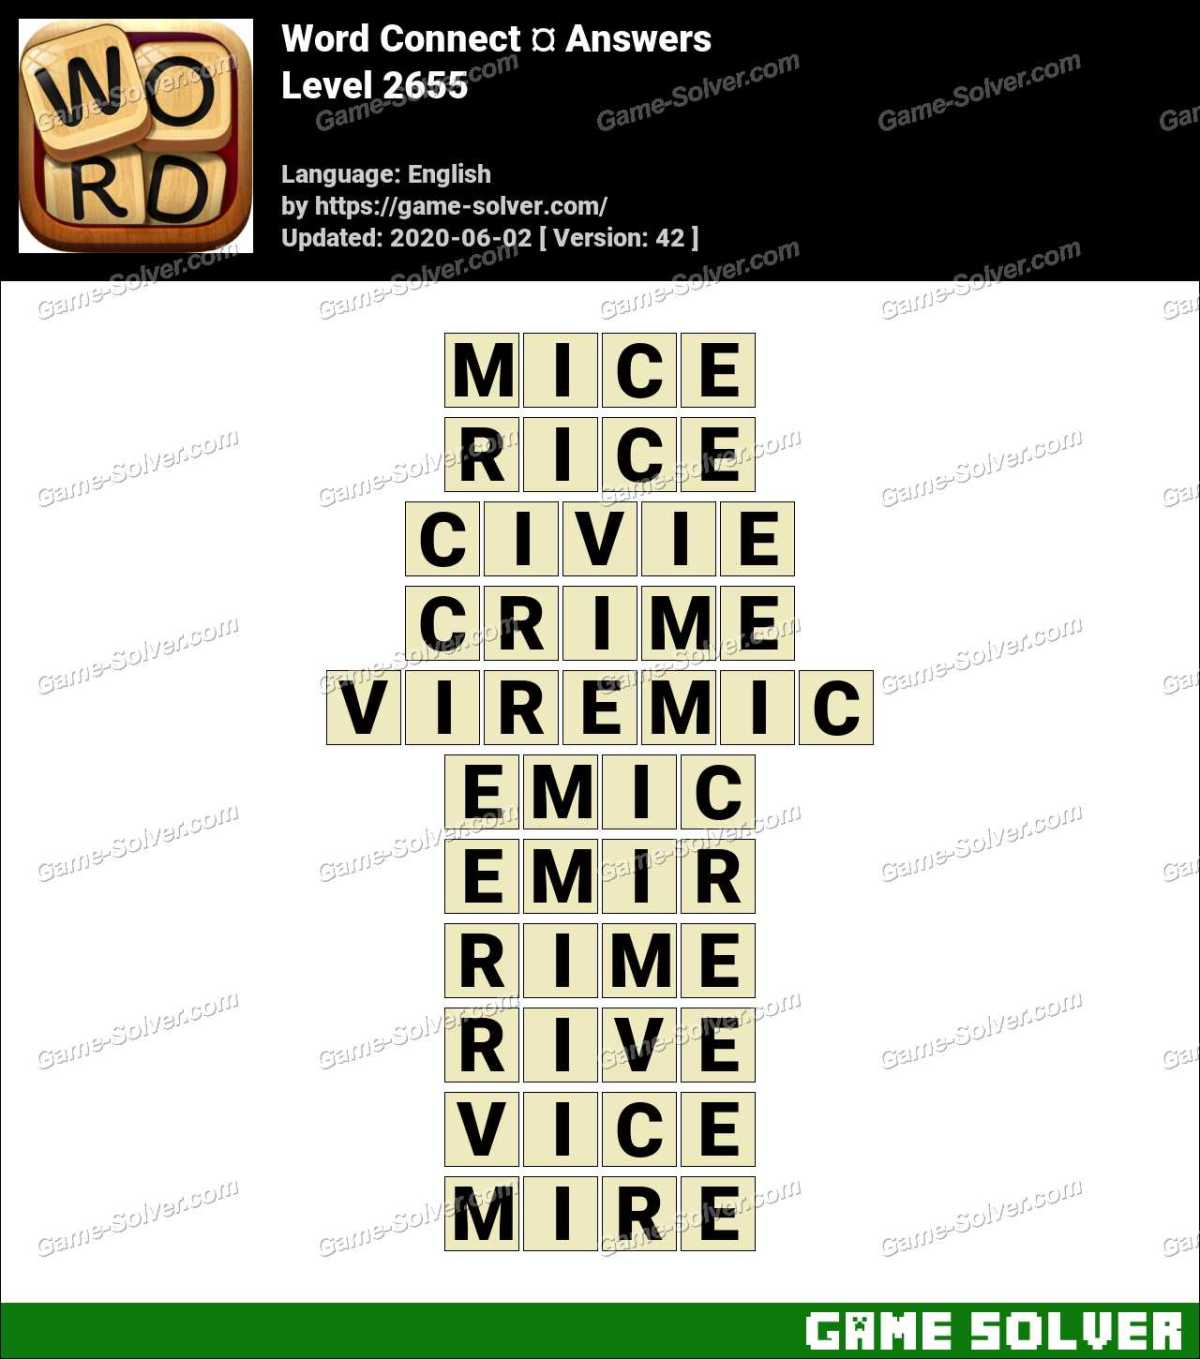 Word Connect Level 2655 Answers